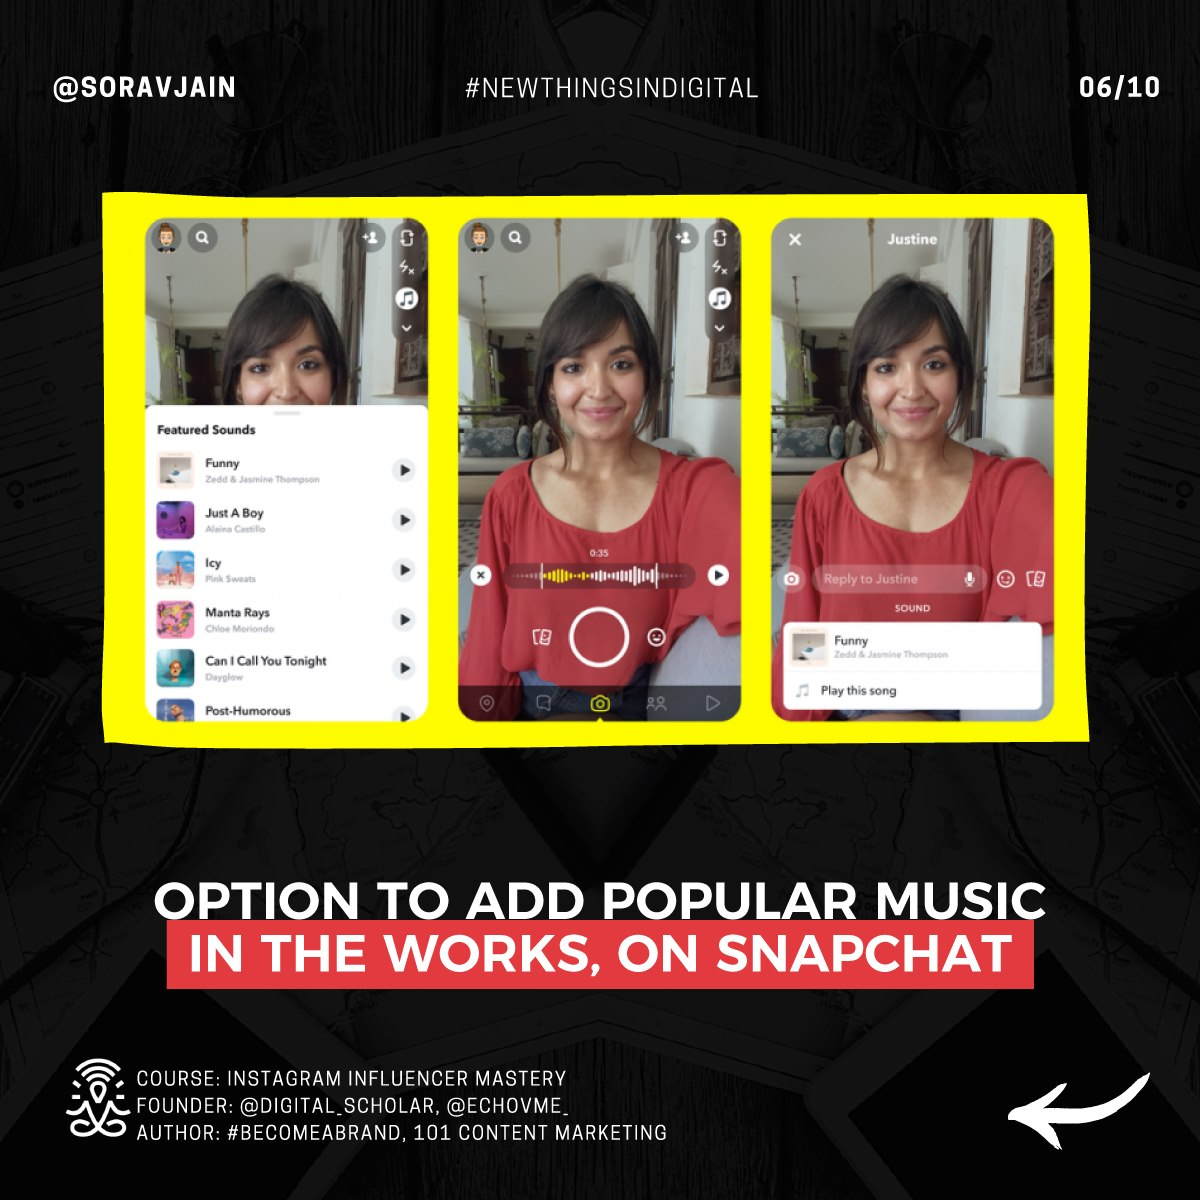 Option to add Popular Music in the works, on Snapchat